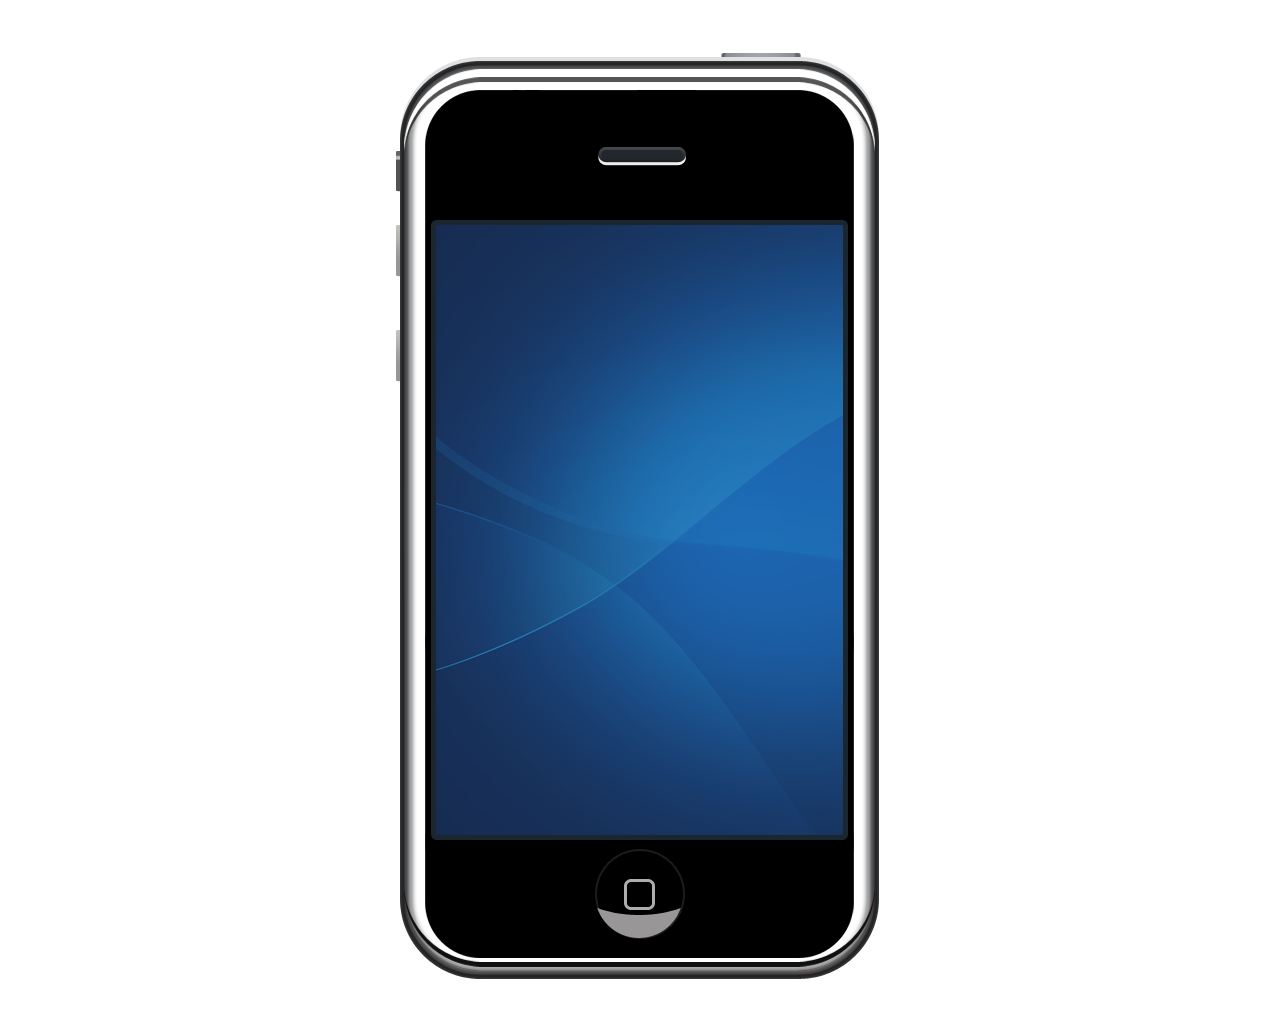 Phone clipart iphone. Smartphone seventeen isolated stock